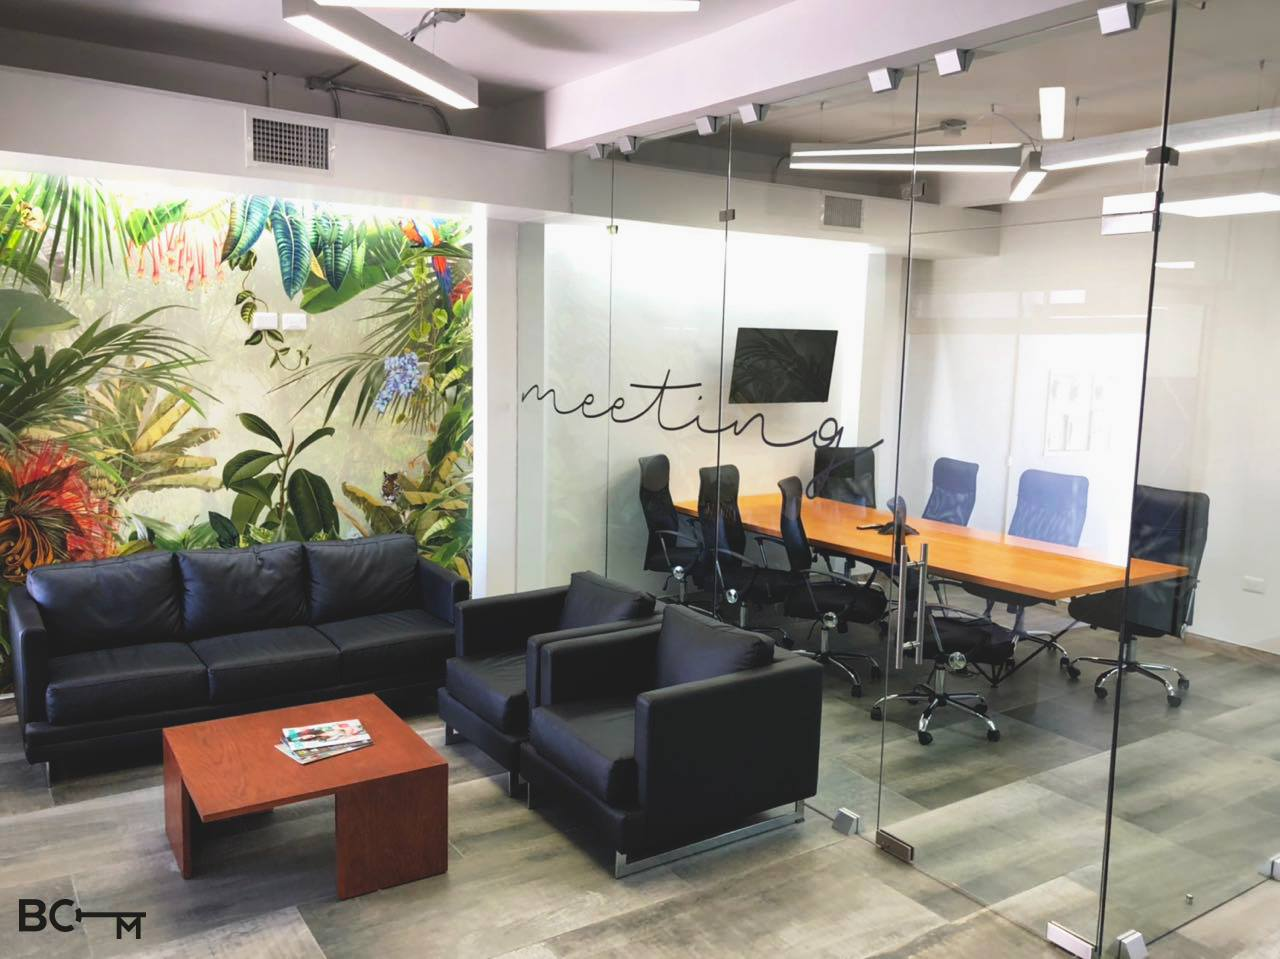 Office Space, Virual Office and Meeting Room in Chihuahua